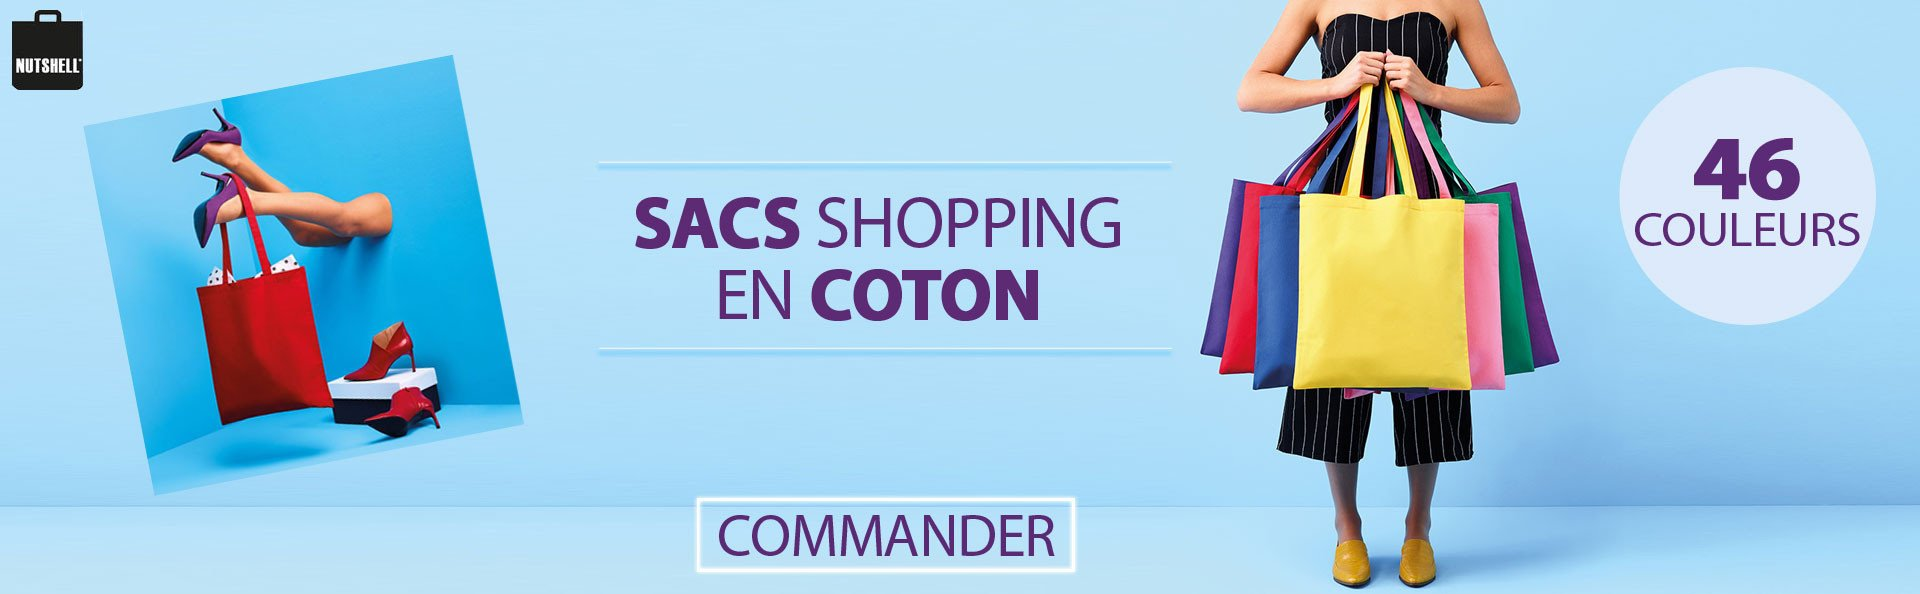 Sacs shopping en coton